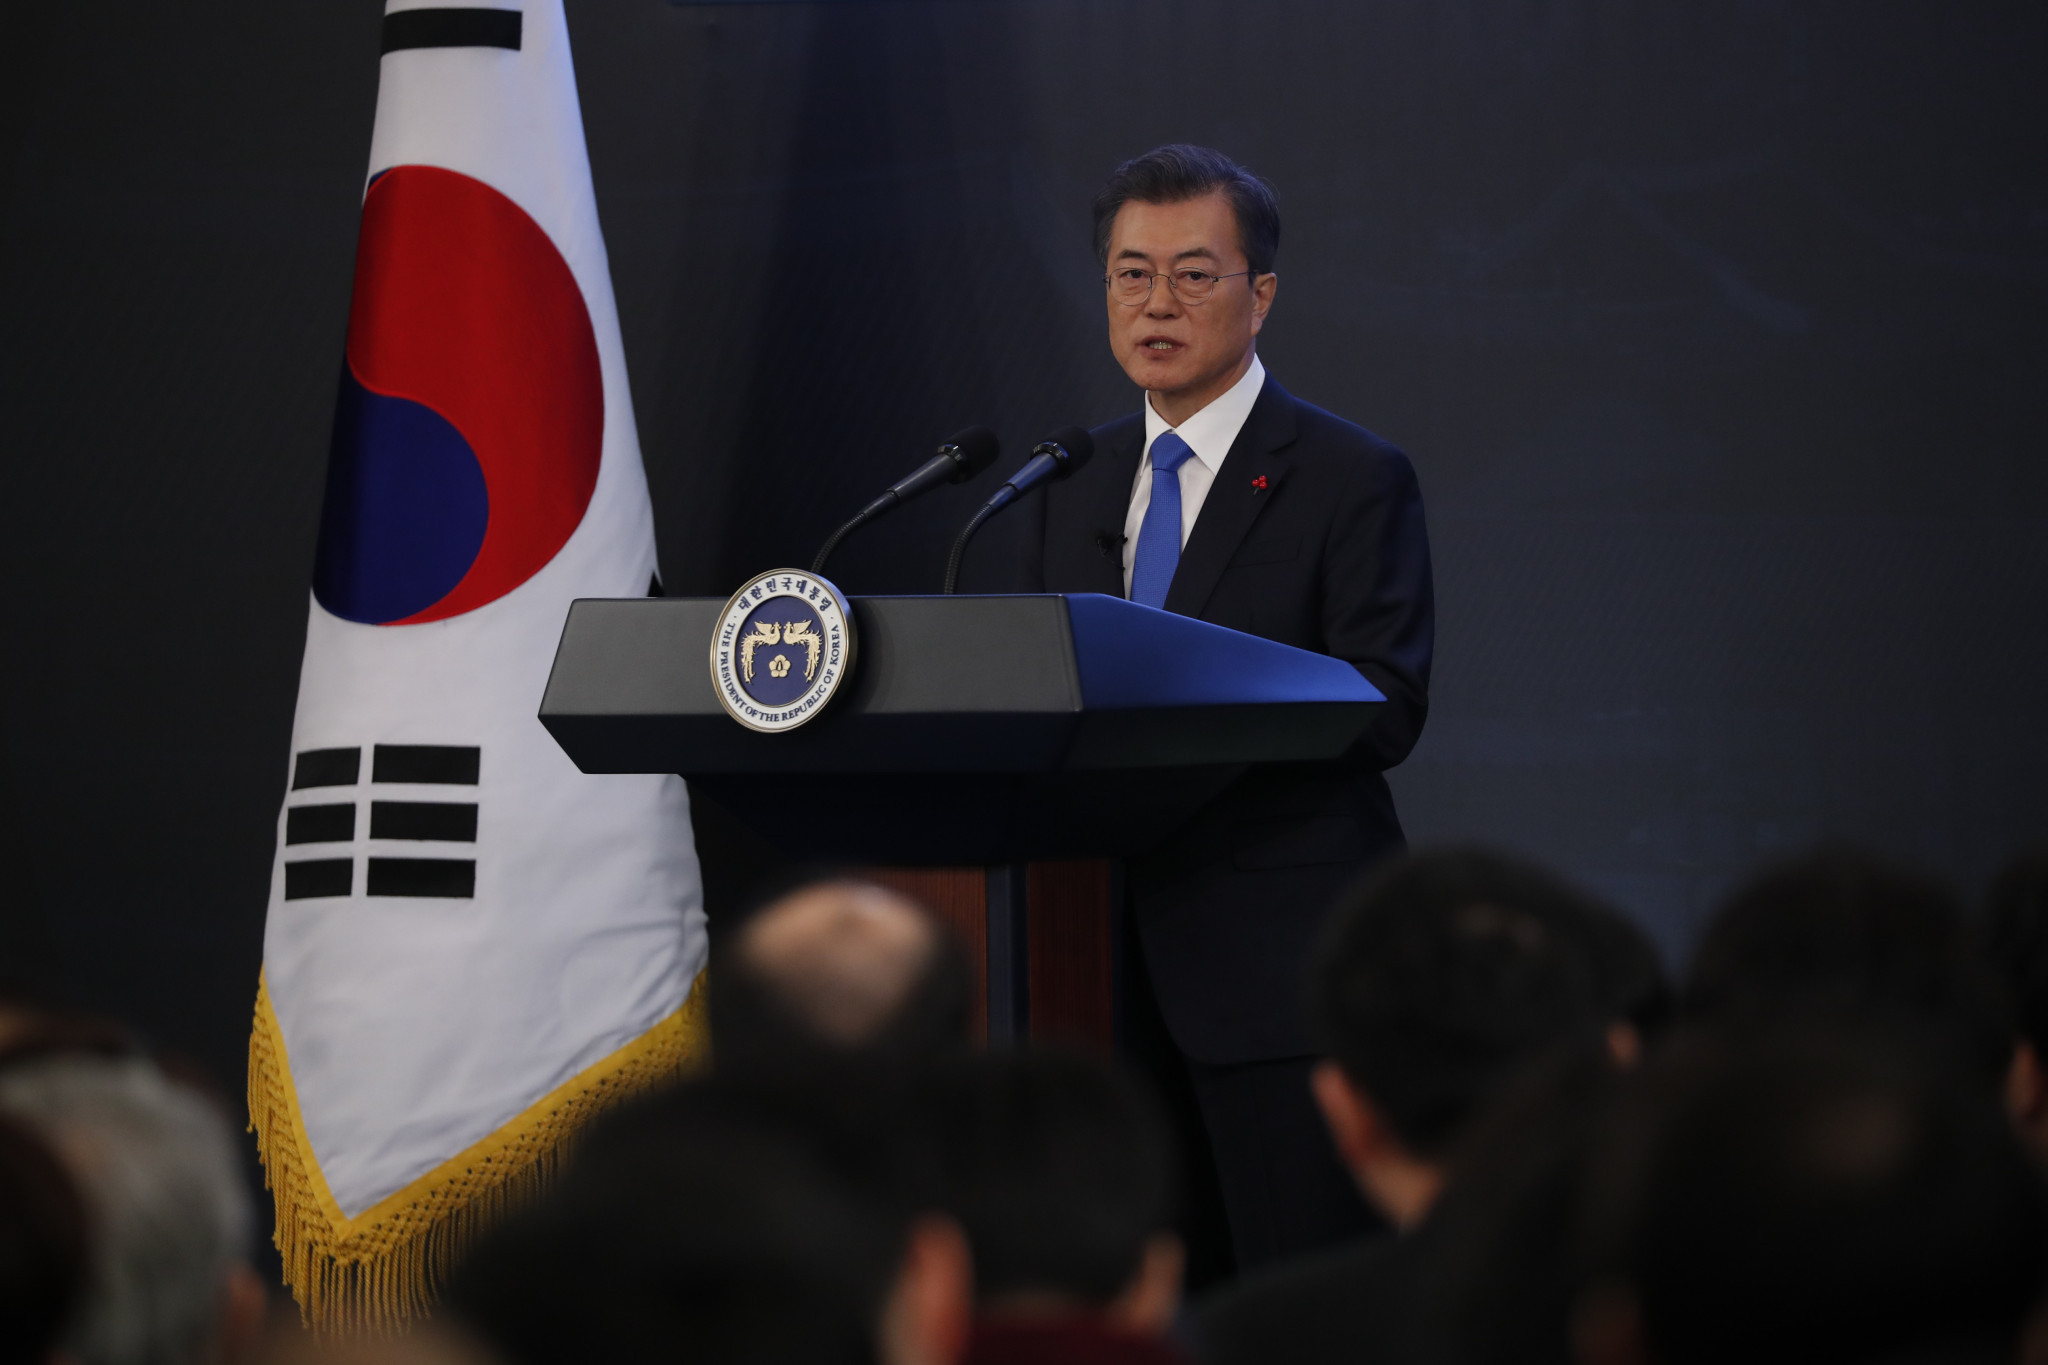 South Korean President Moon Jae-in hopes 2018 could be a turning point in relations on the Korean Peninsula ©Getty Images